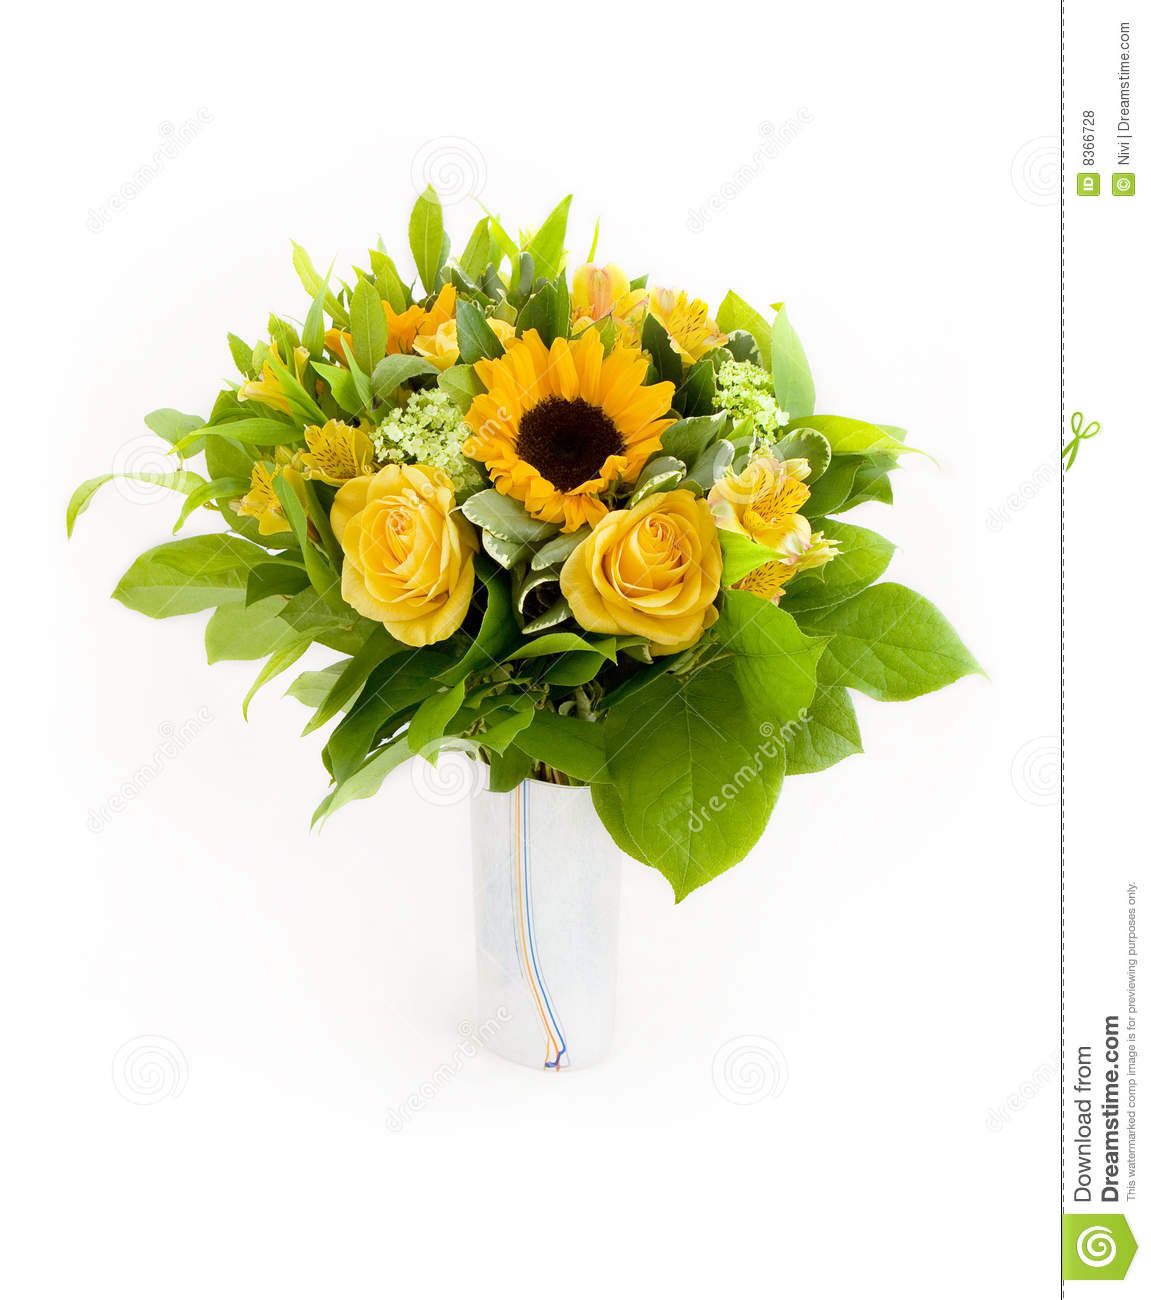 Yellow Flowers Bouquet Royalty Free Stock Photos - Image: 8366728